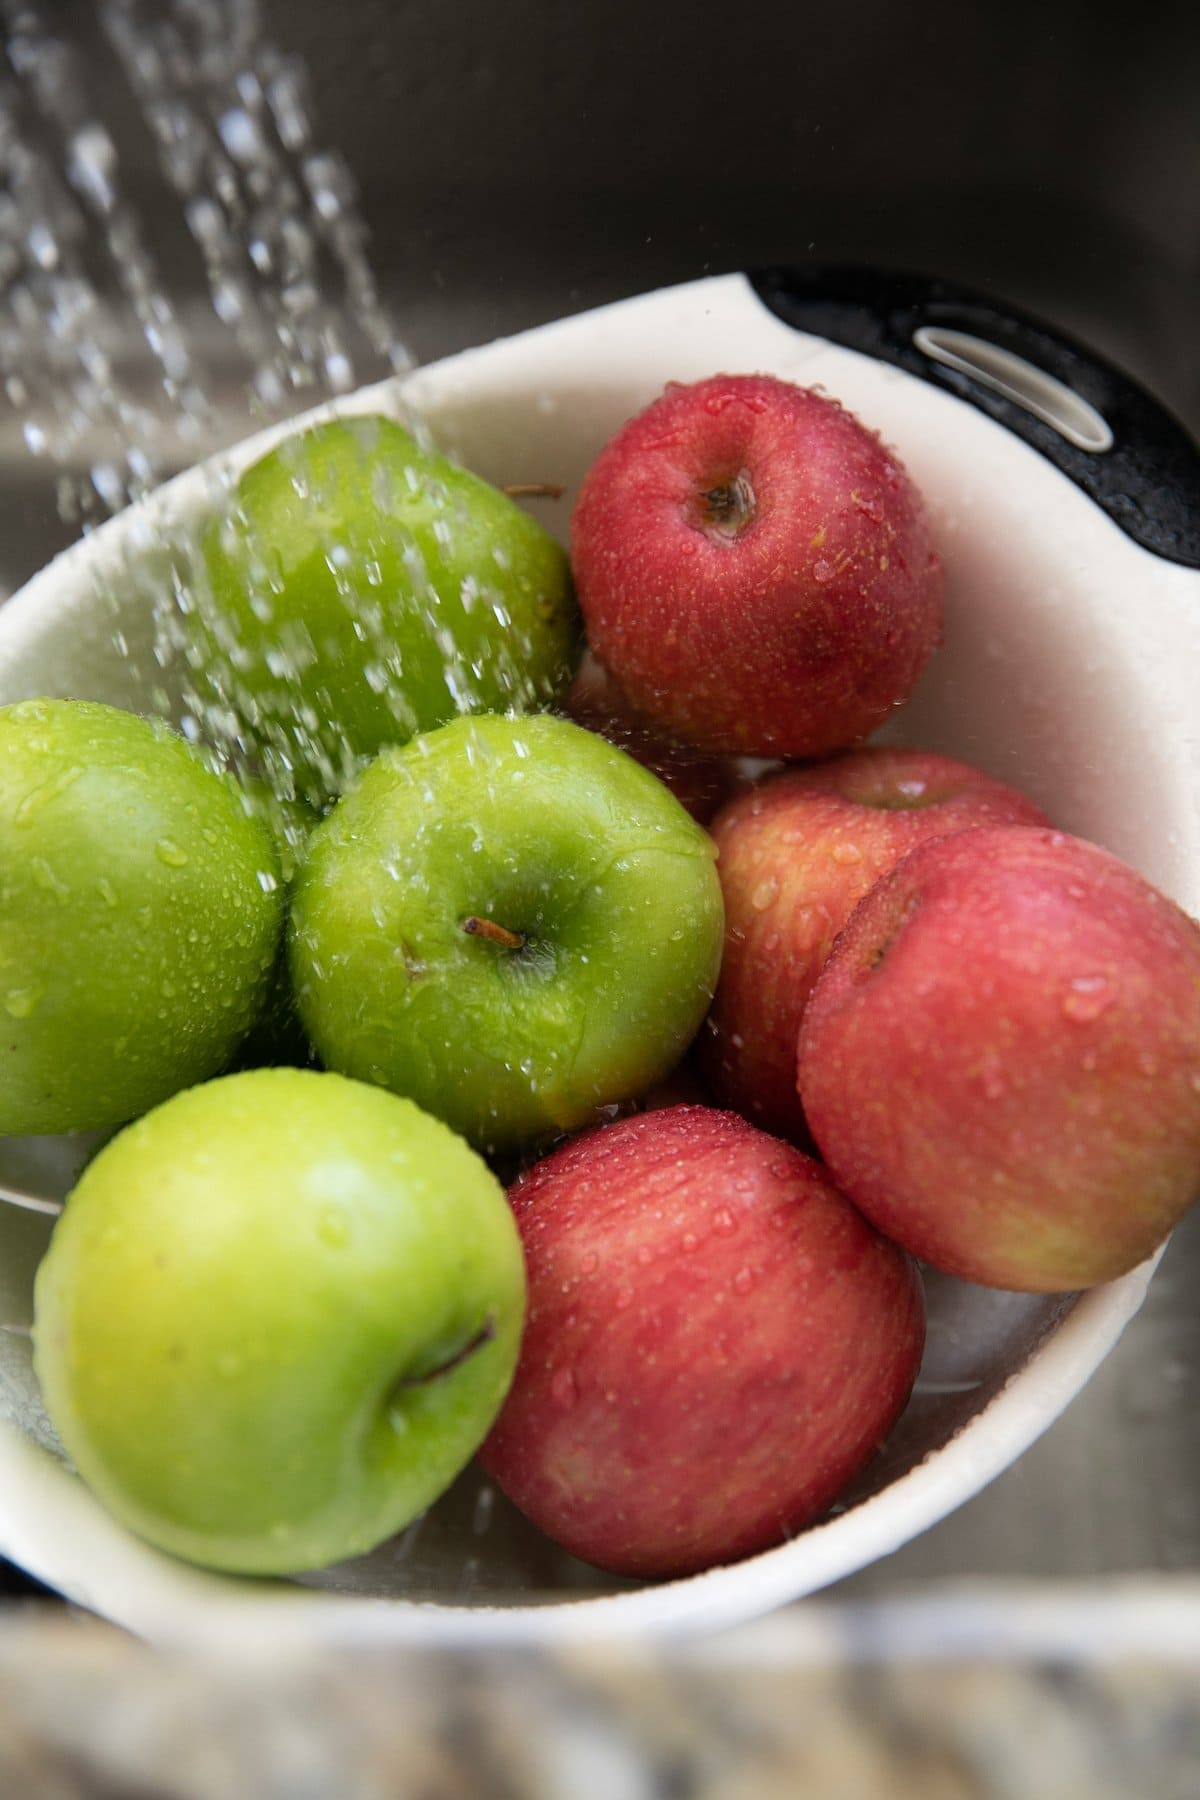 washing apples in a colander